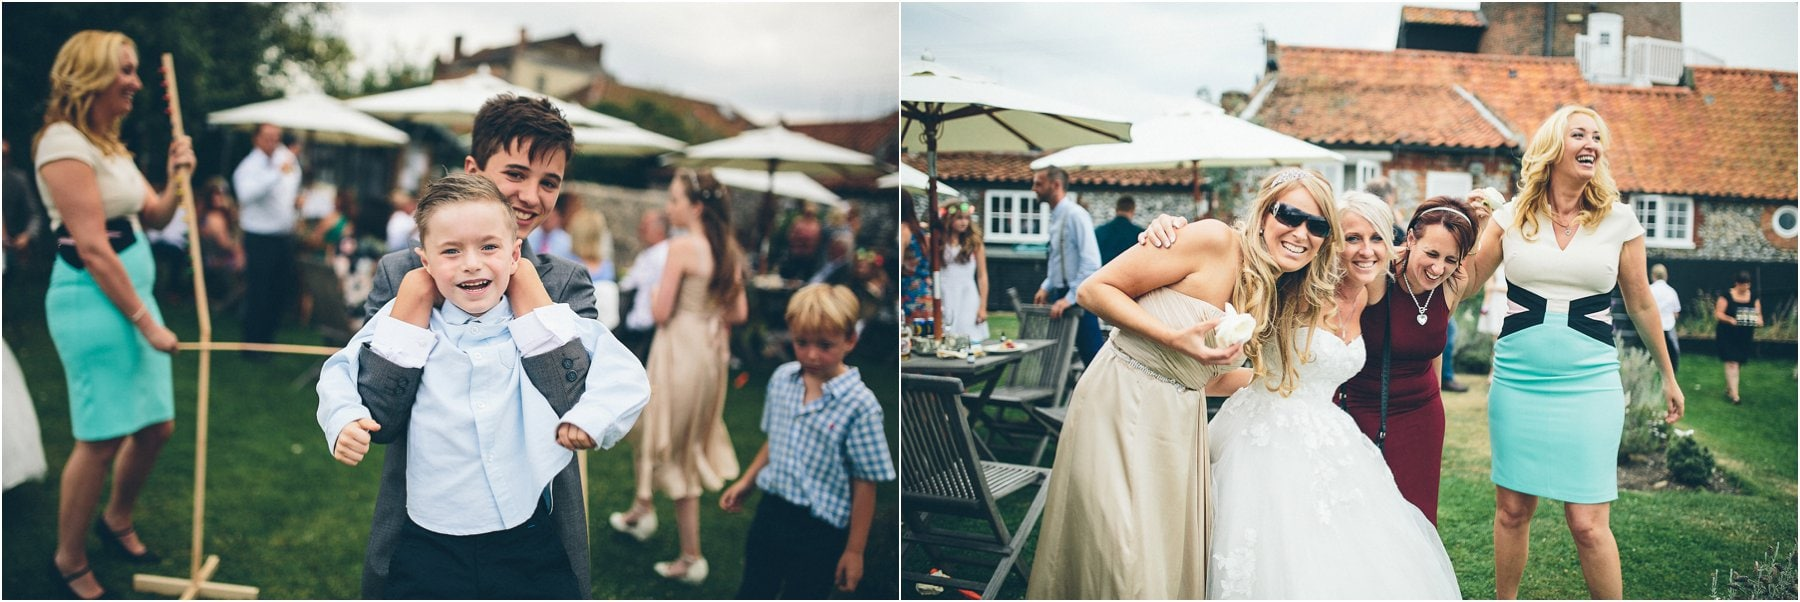 Cley_Windmill_Wedding_Photography_0142